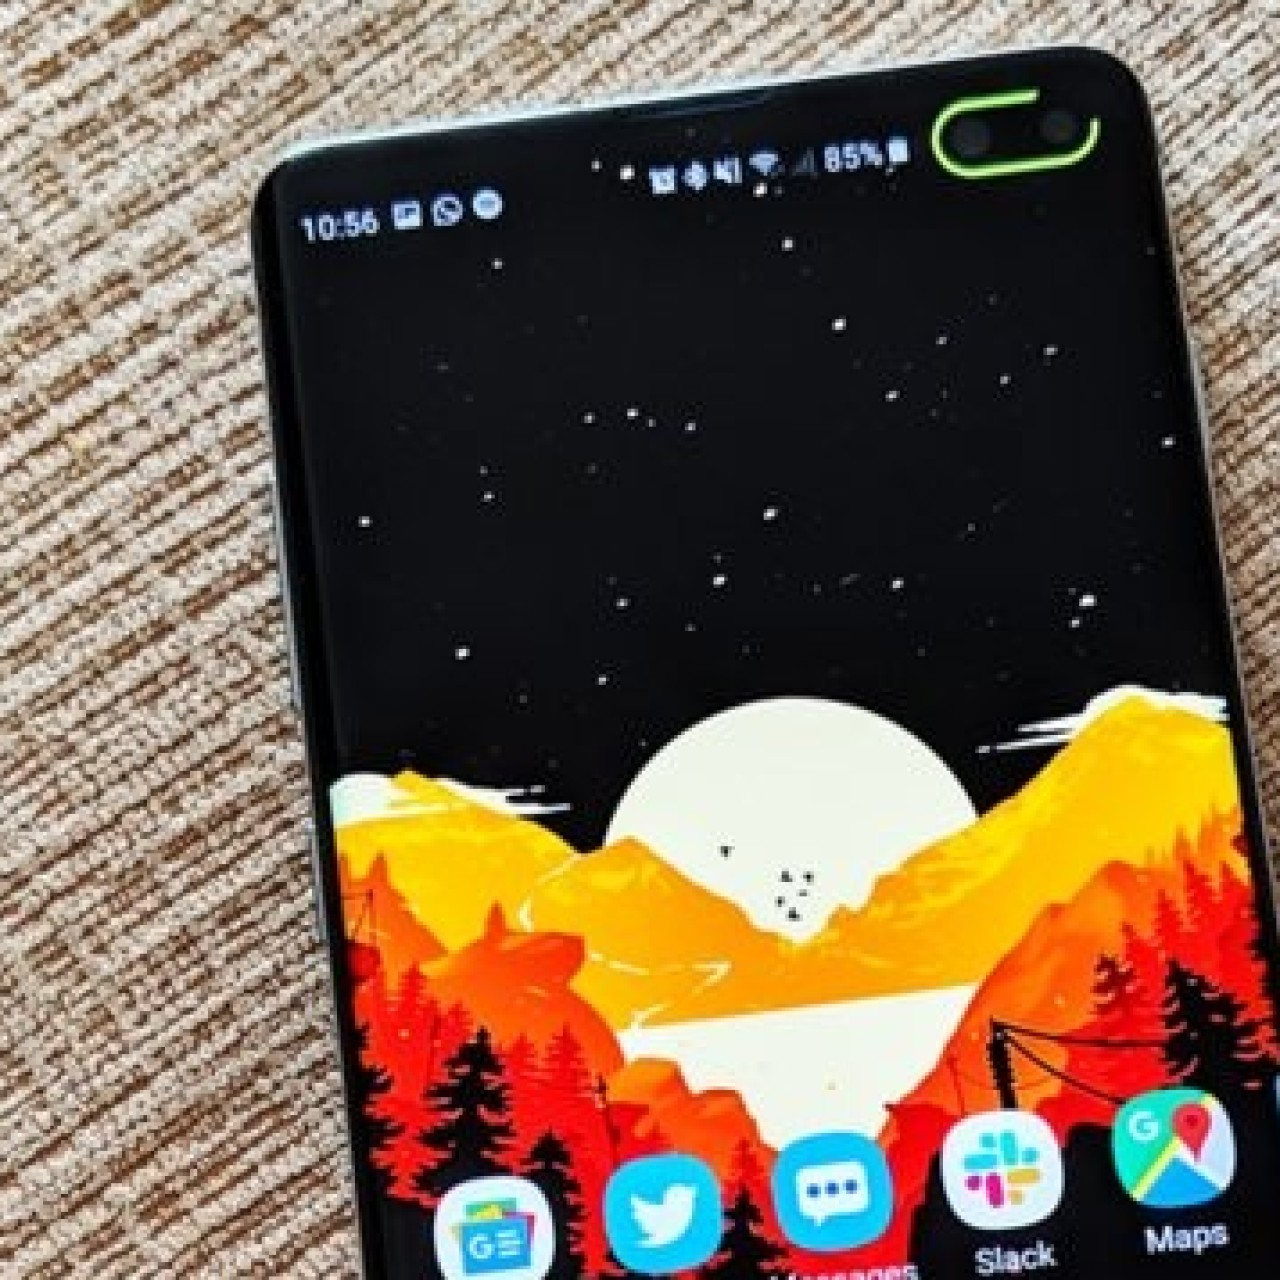 This app for Samsung's new Galaxy S10 phones makes great use